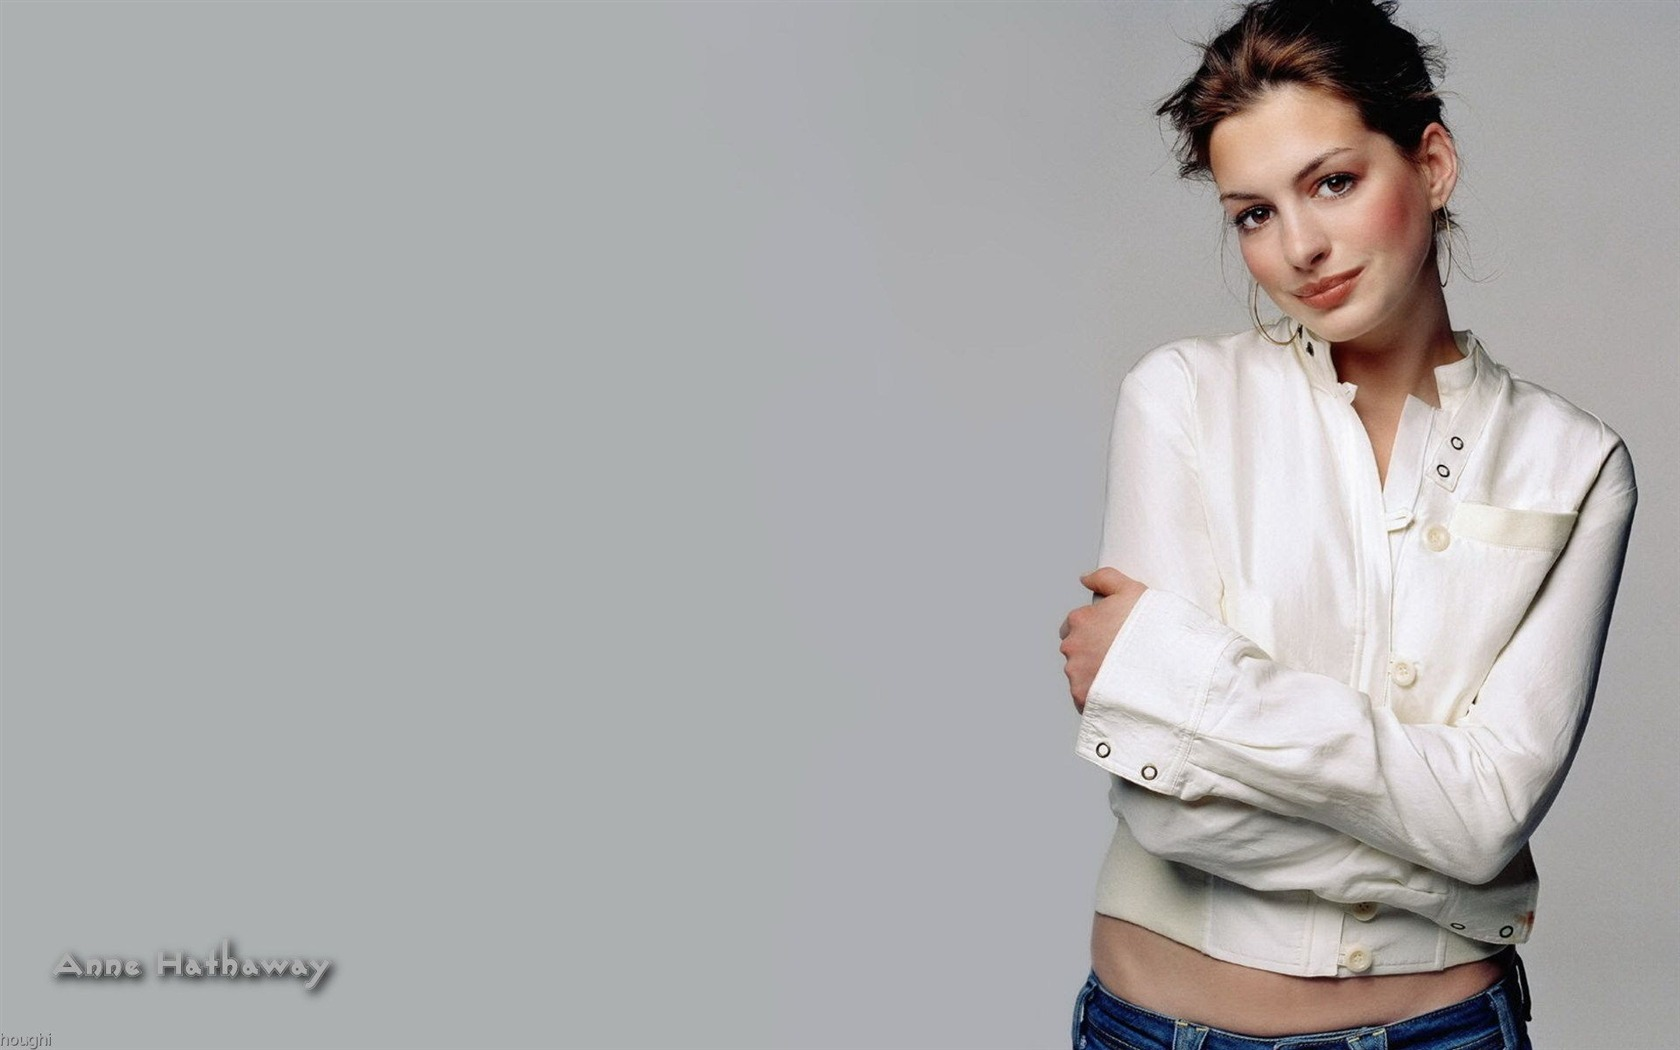 Anne Hathaway #044 - 1680x1050 Wallpapers Pictures Photos Images